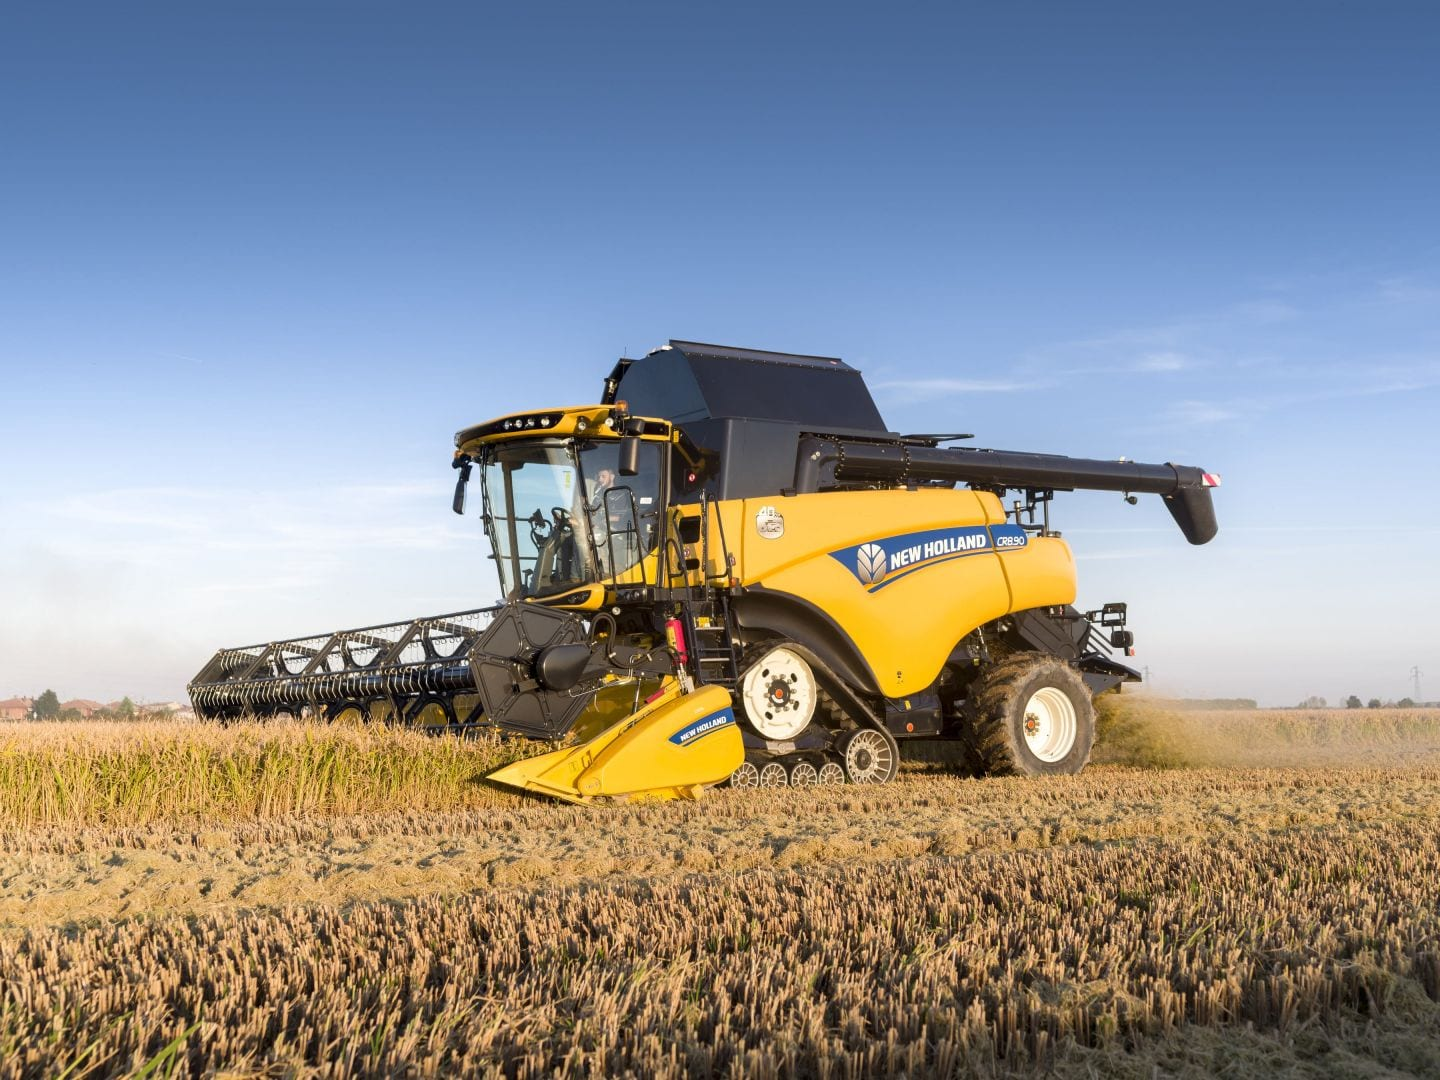 New Holland CR8.90 Combine Harvesters at C&O Tractors